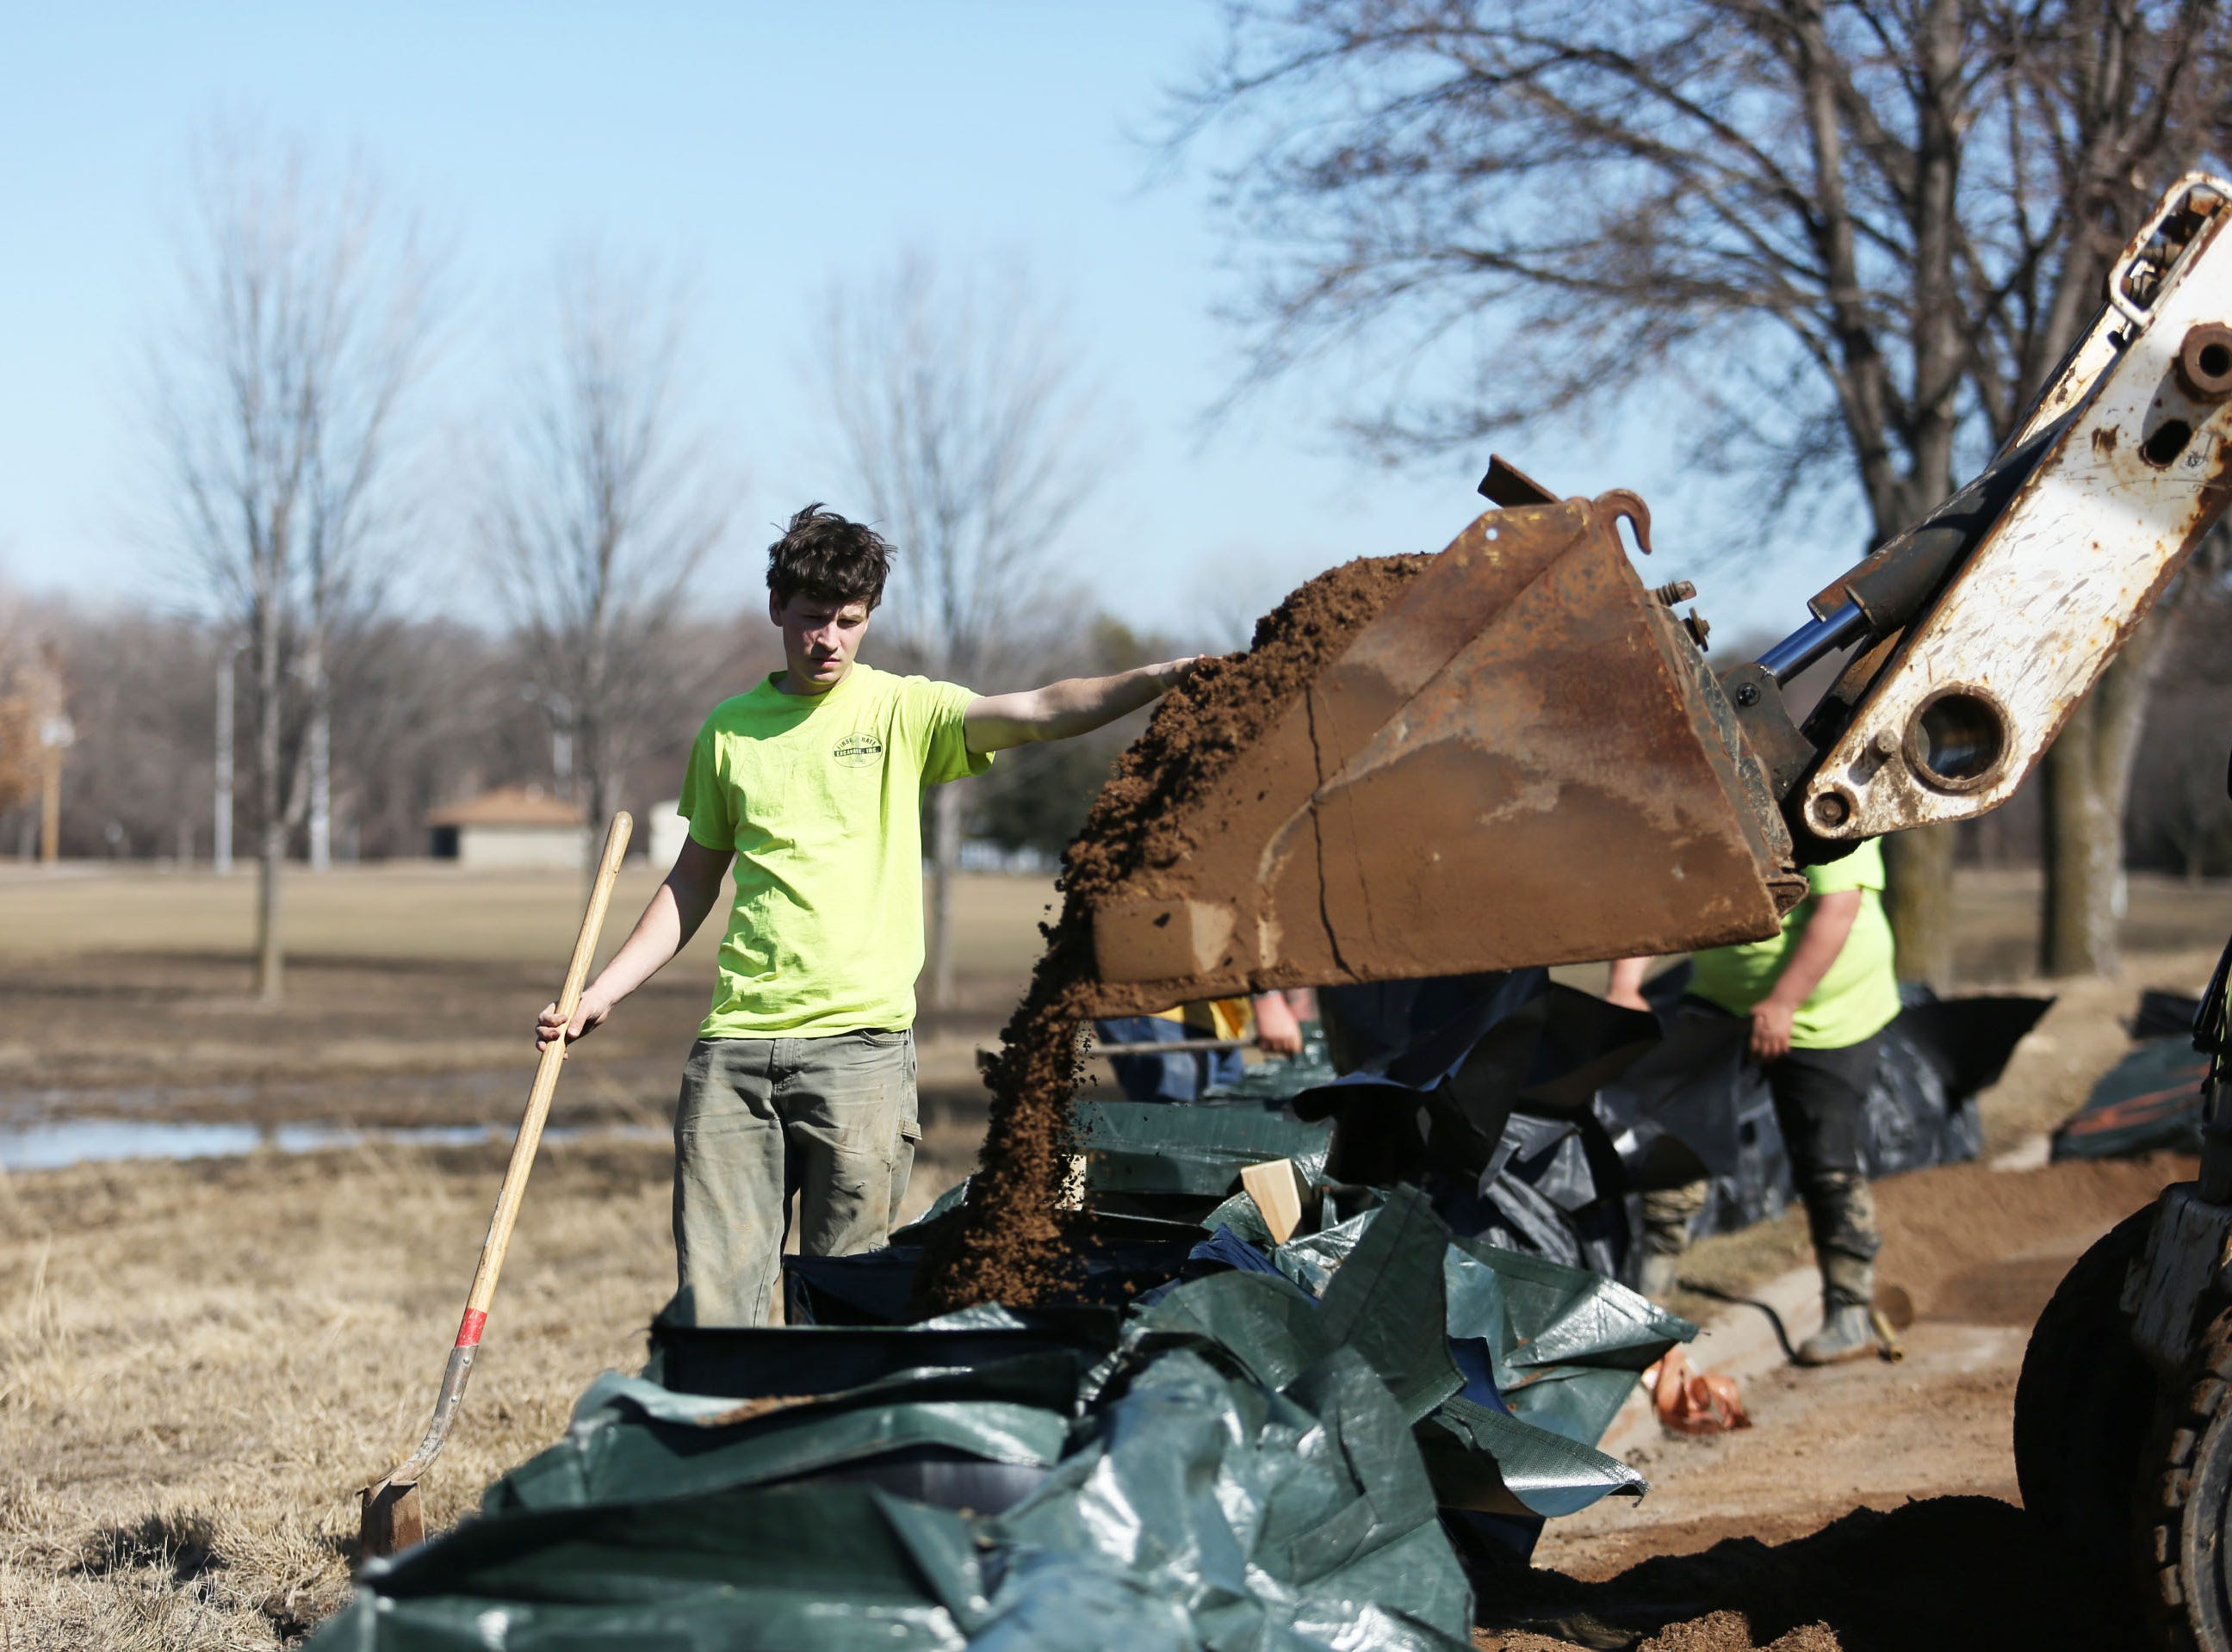 Allan-mark Iva, with First Rate Excavate Labor, helps fill trap bags along the Big Sioux River and Tomar Park March 21, 2019. The City of Sioux Falls installed a trap bag system near the Lotta Street and Minnesota Avenue residential area in hopes of preventing flooding early next week.